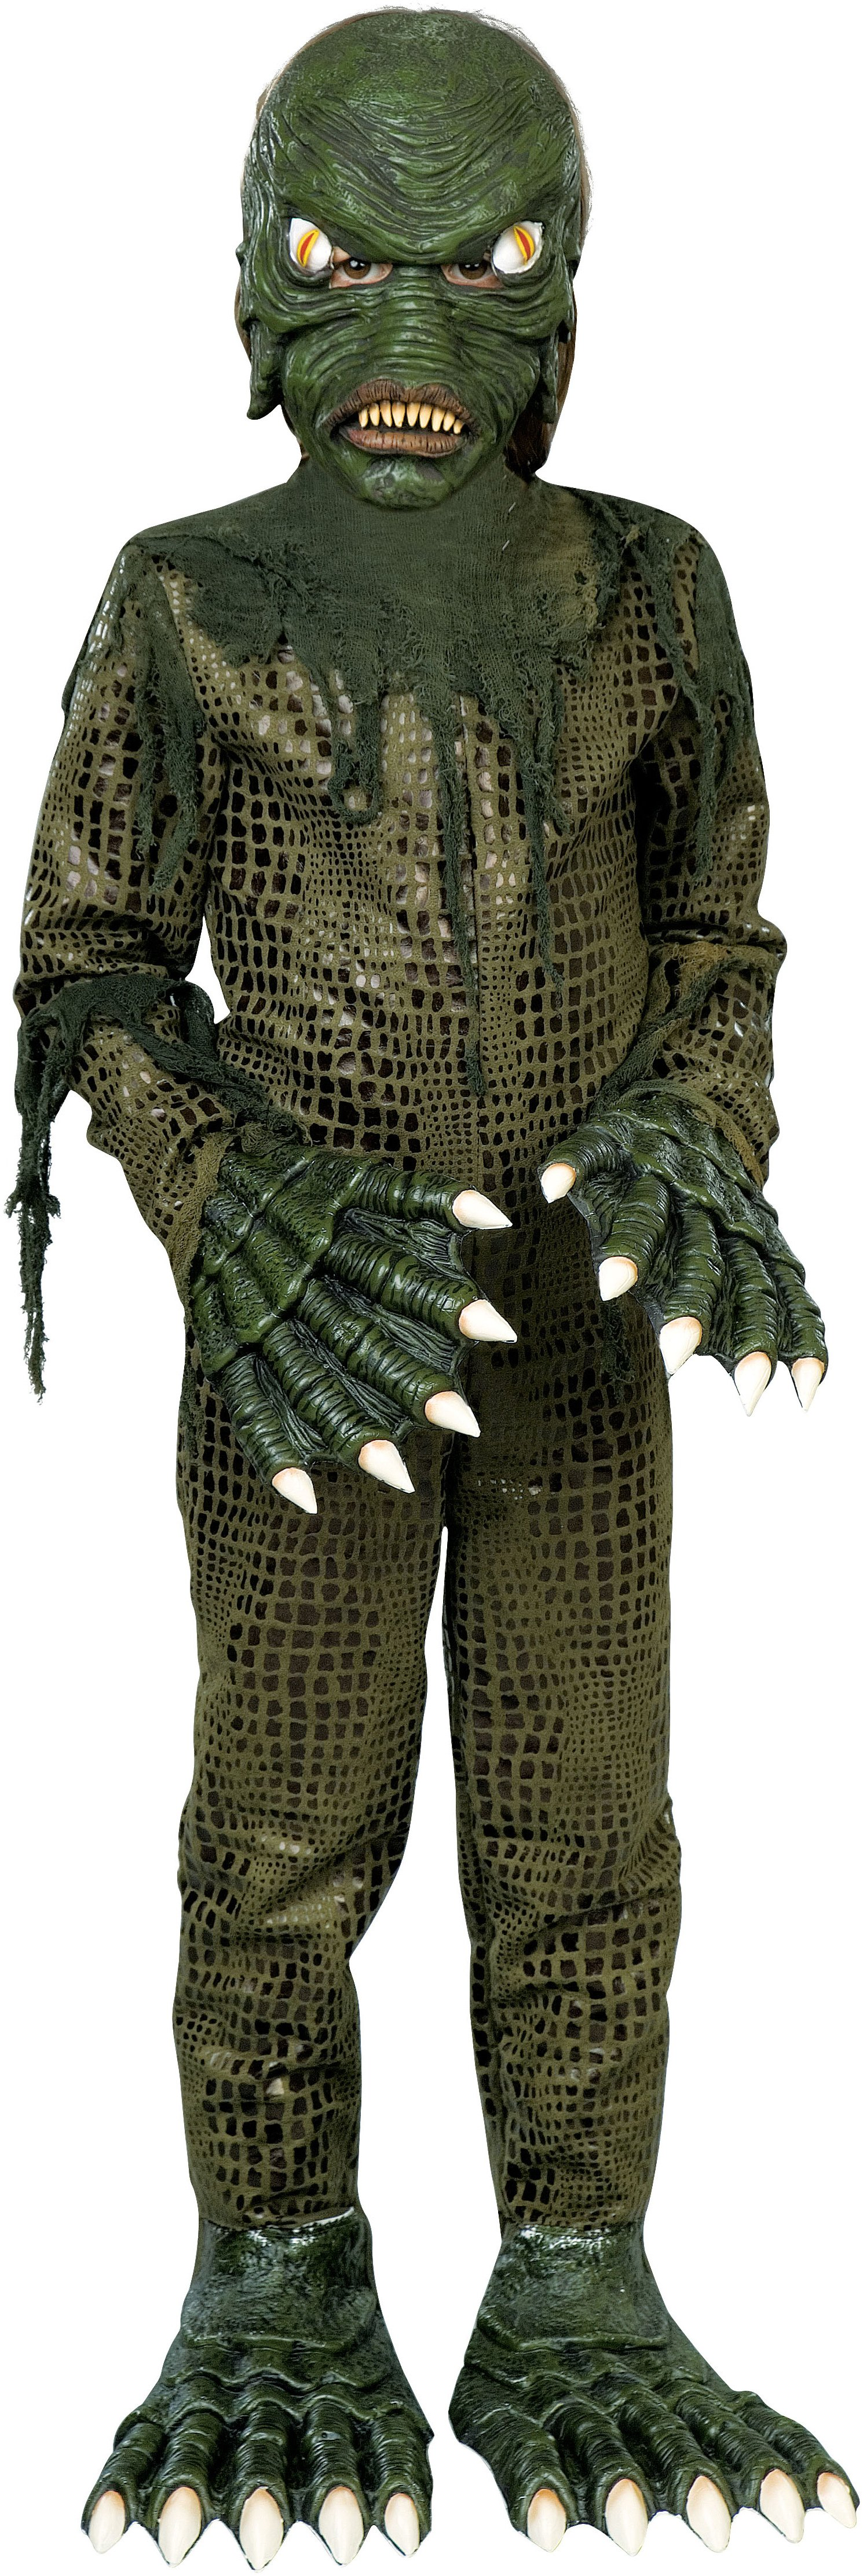 Swamp Monster Child Costume | Children costumes, Costumes and ...